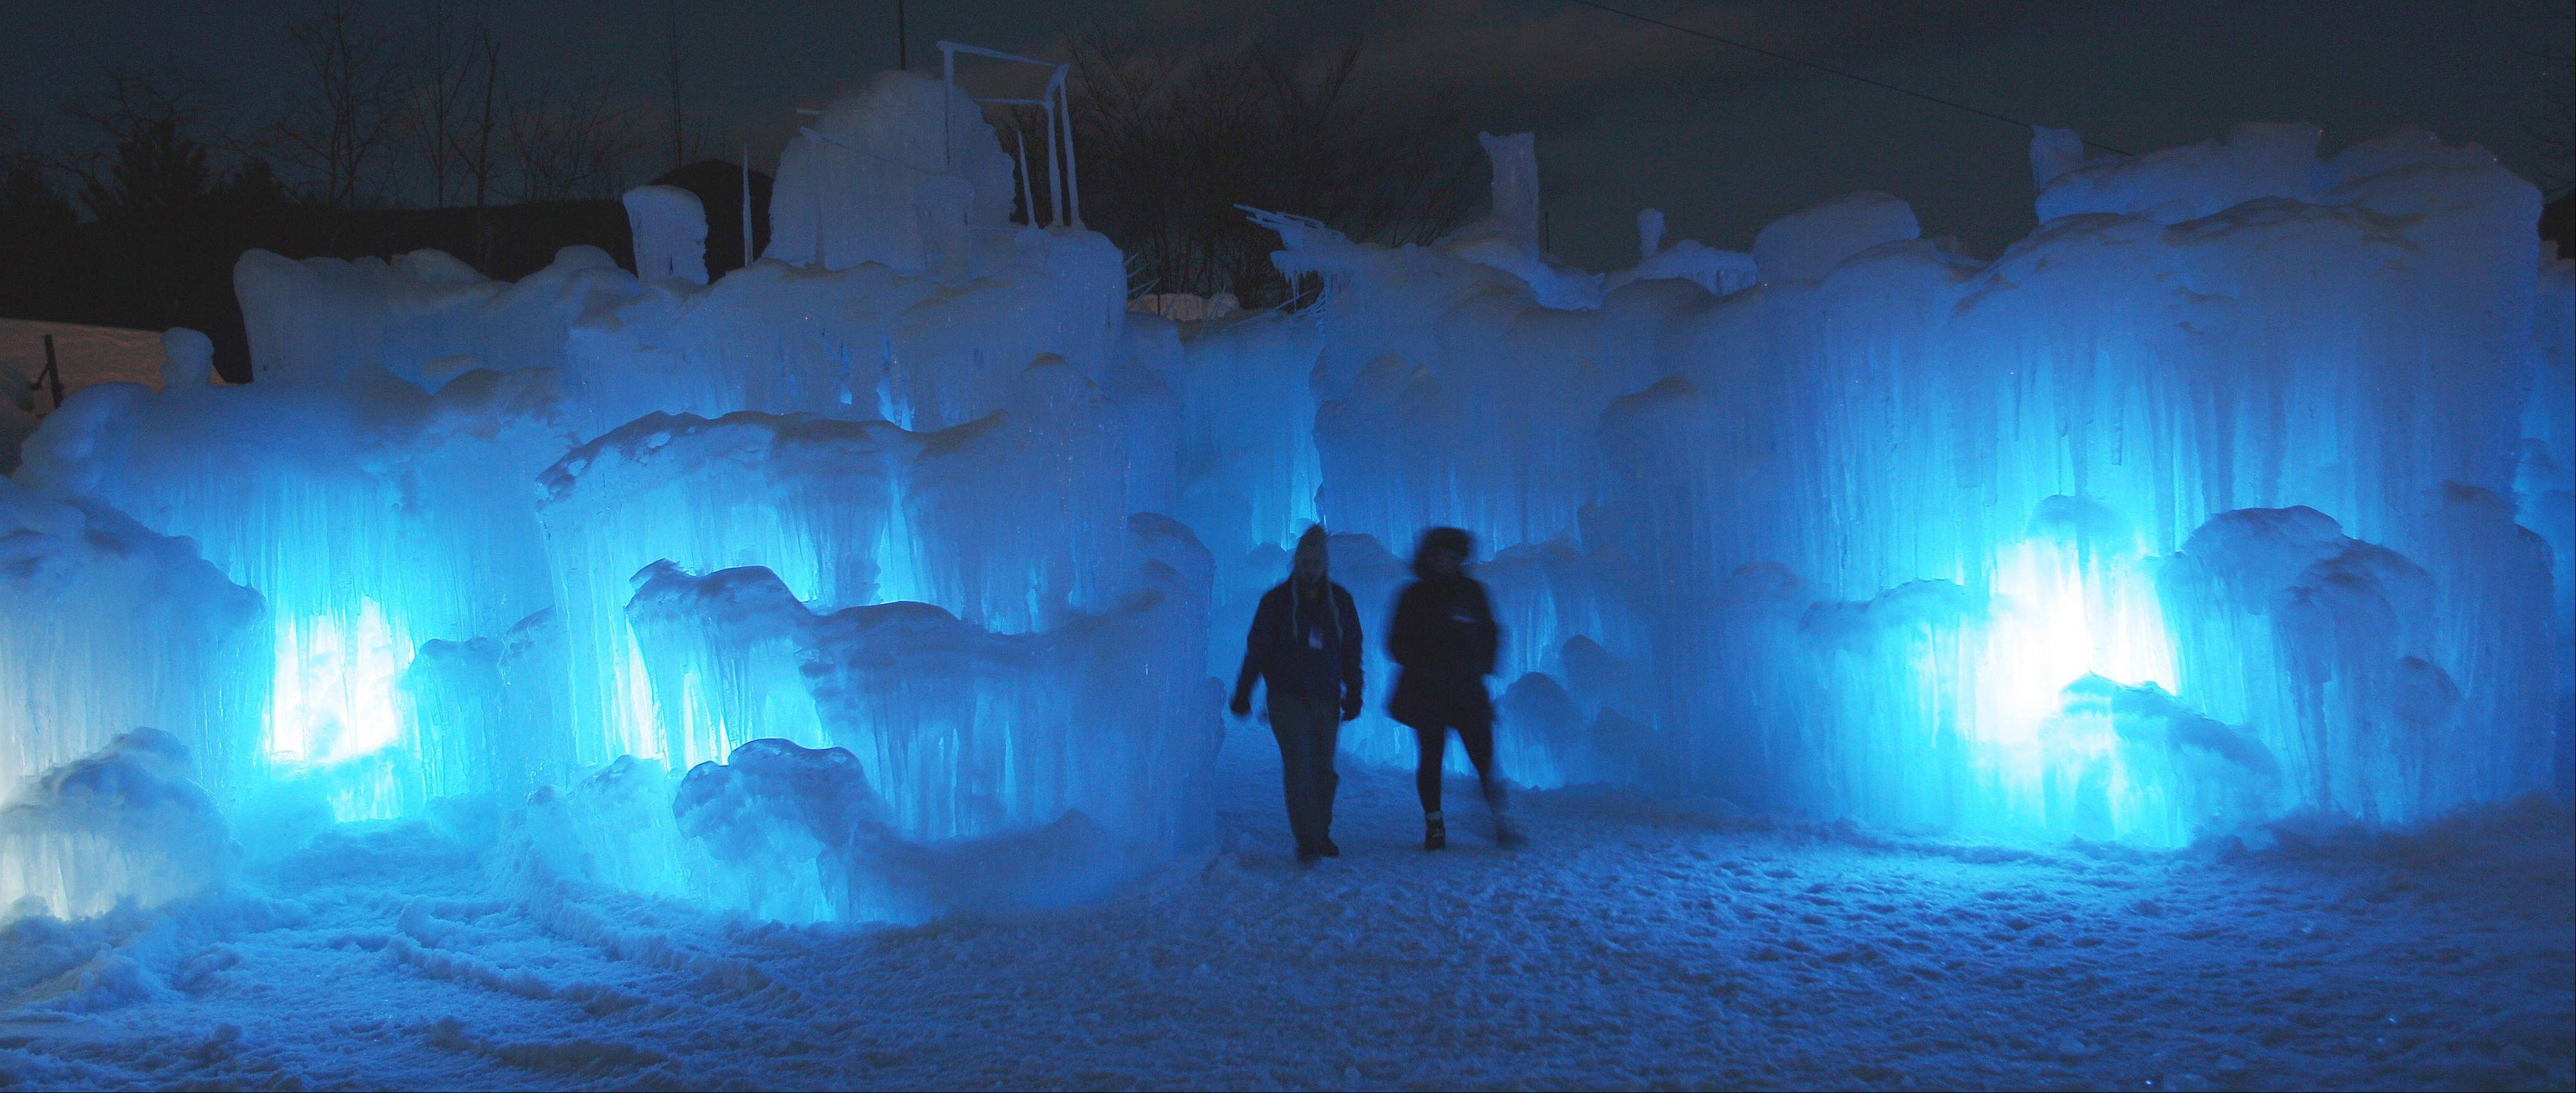 Visitors tour an ice castle at the base of the Loon Mountain ski resort in Lincoln, N.H. There are 58 towers on the Lincoln castle, plus a waterfall and an enclosed slide.